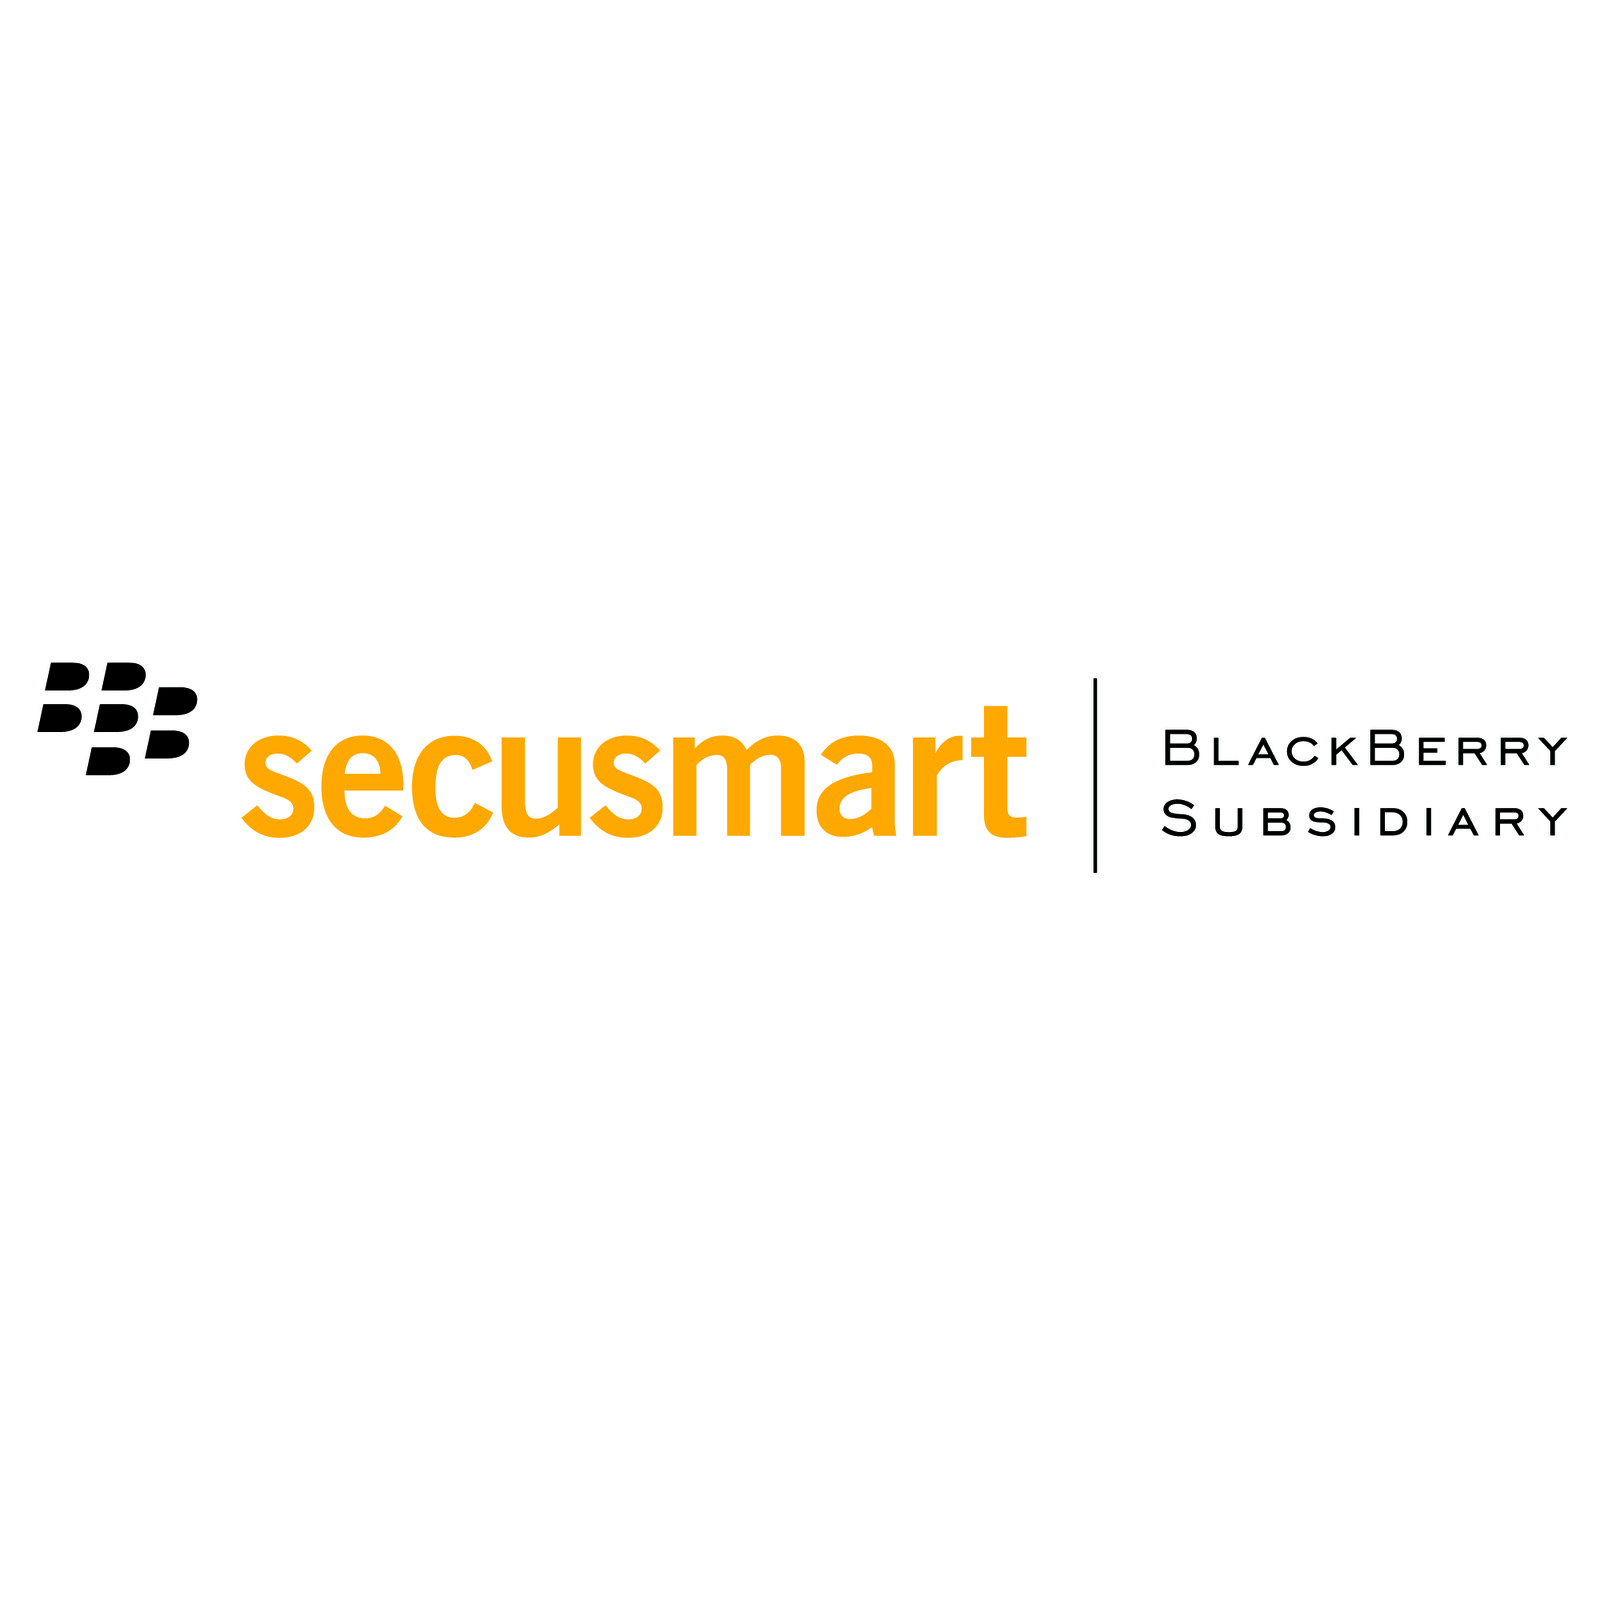 BlackBerry can sell encryption tools to USA government after NSA approval